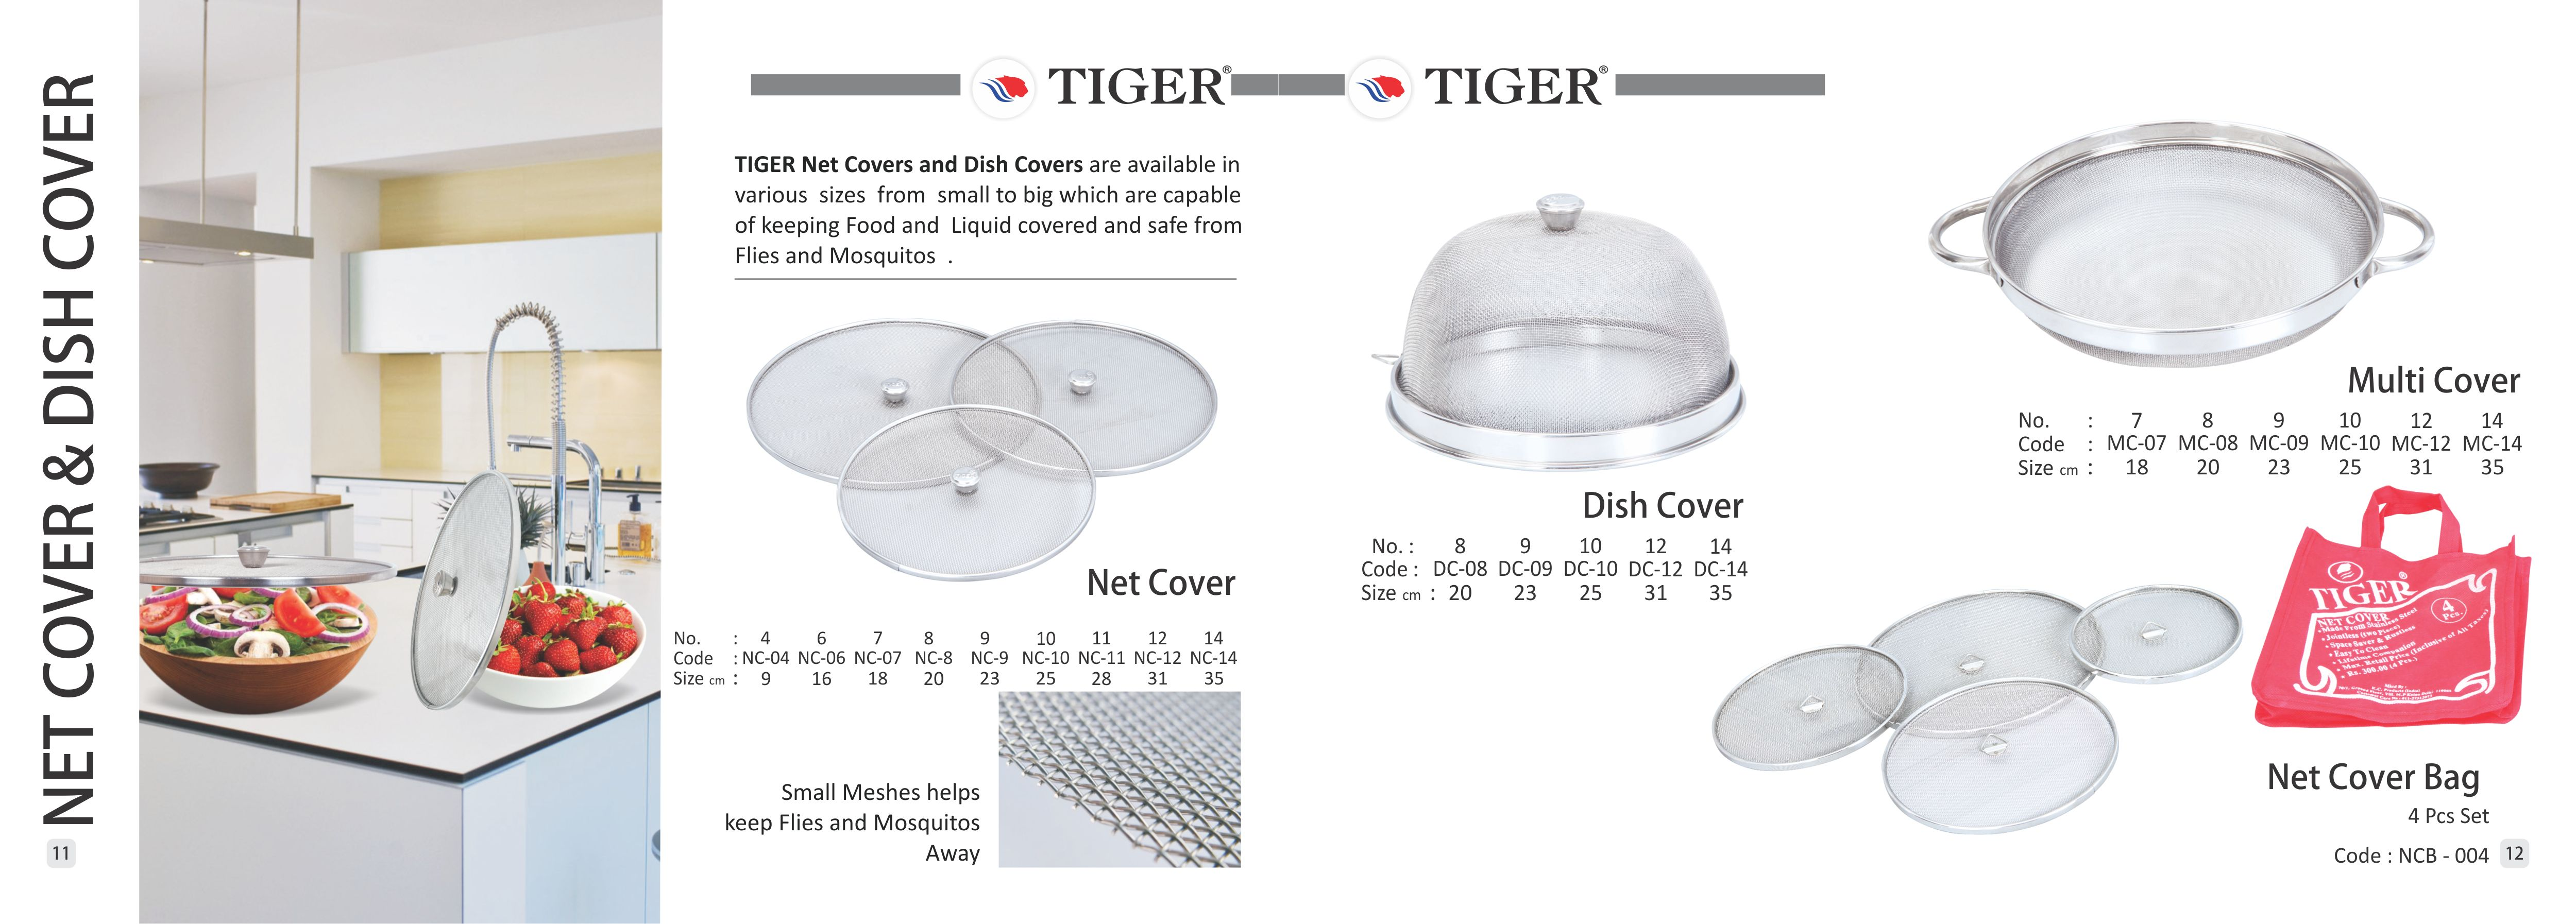 Net Cover & Dish Cover – Tiger Strainers